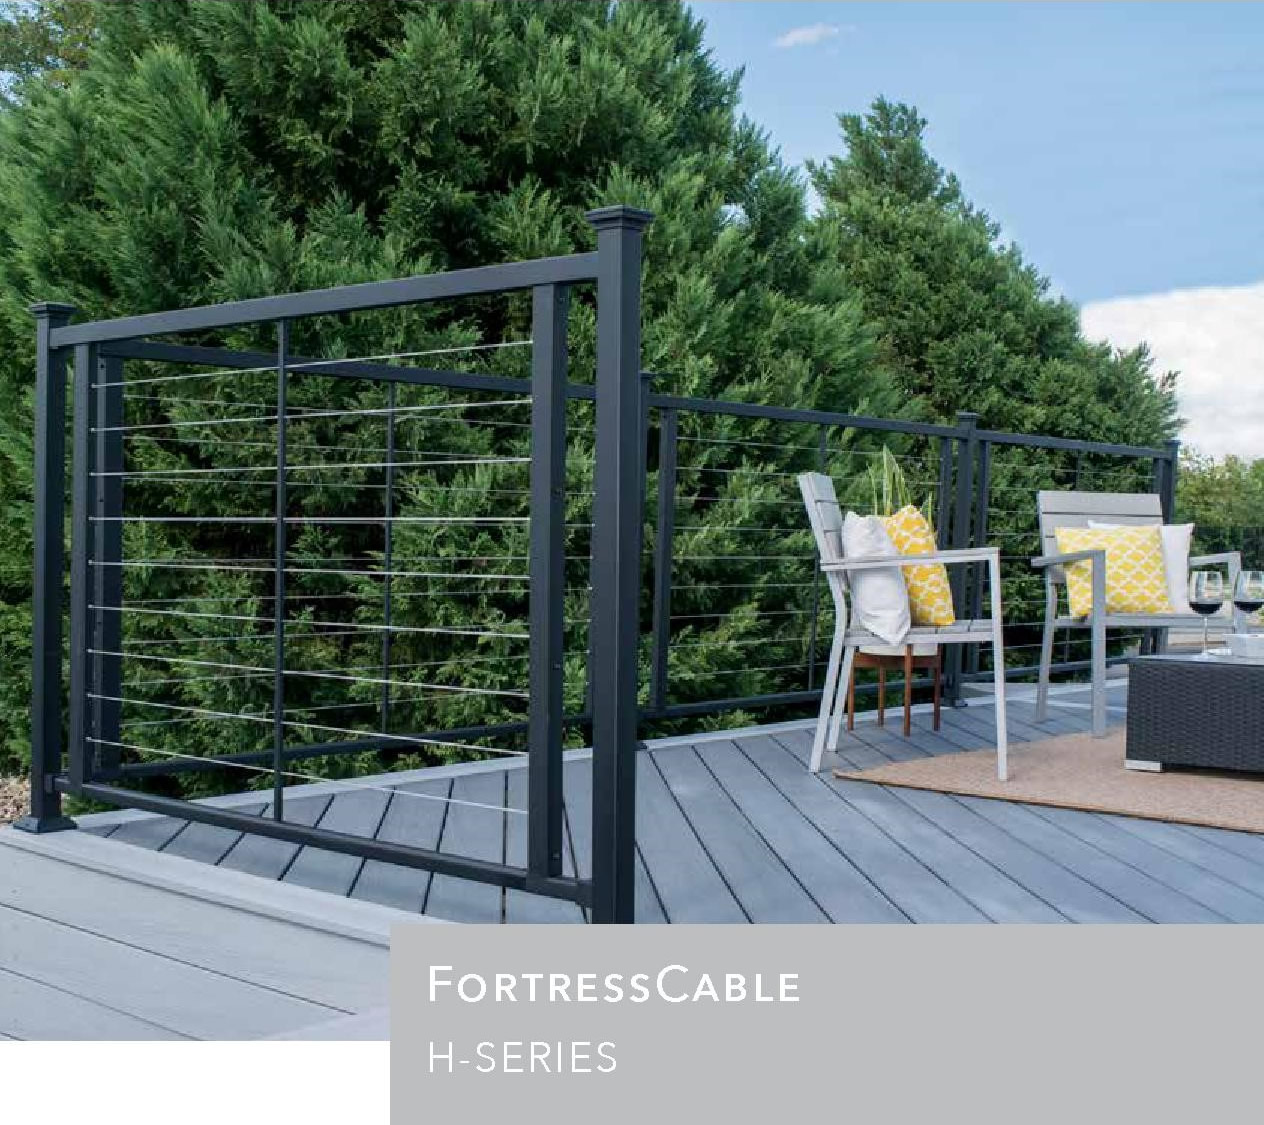 Fortress Vertical Horizontal Cable Rails